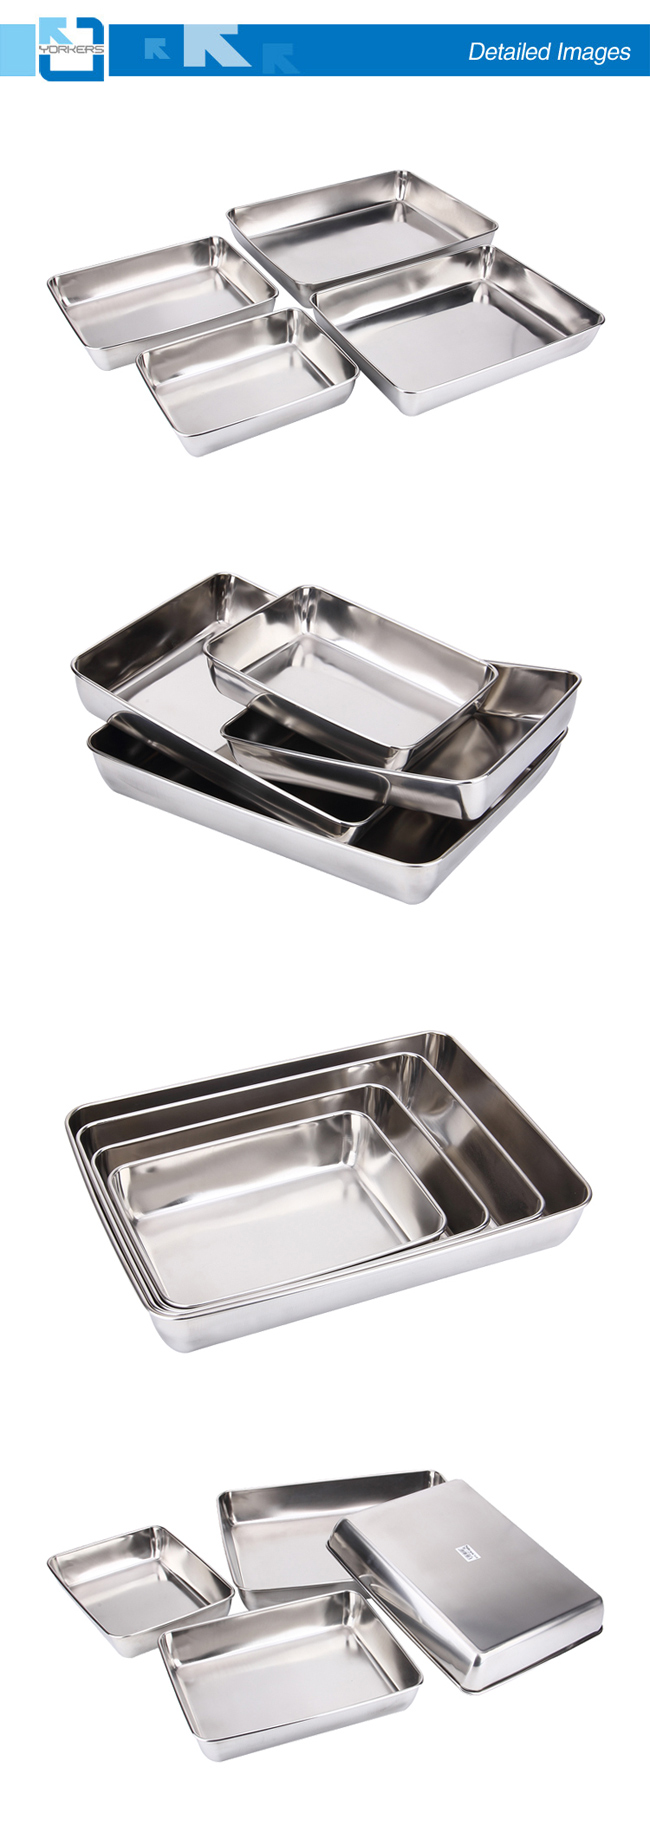 Hot Sale Service Equipment Stainless Steel Service Towel Dish Hotel Towel Tray